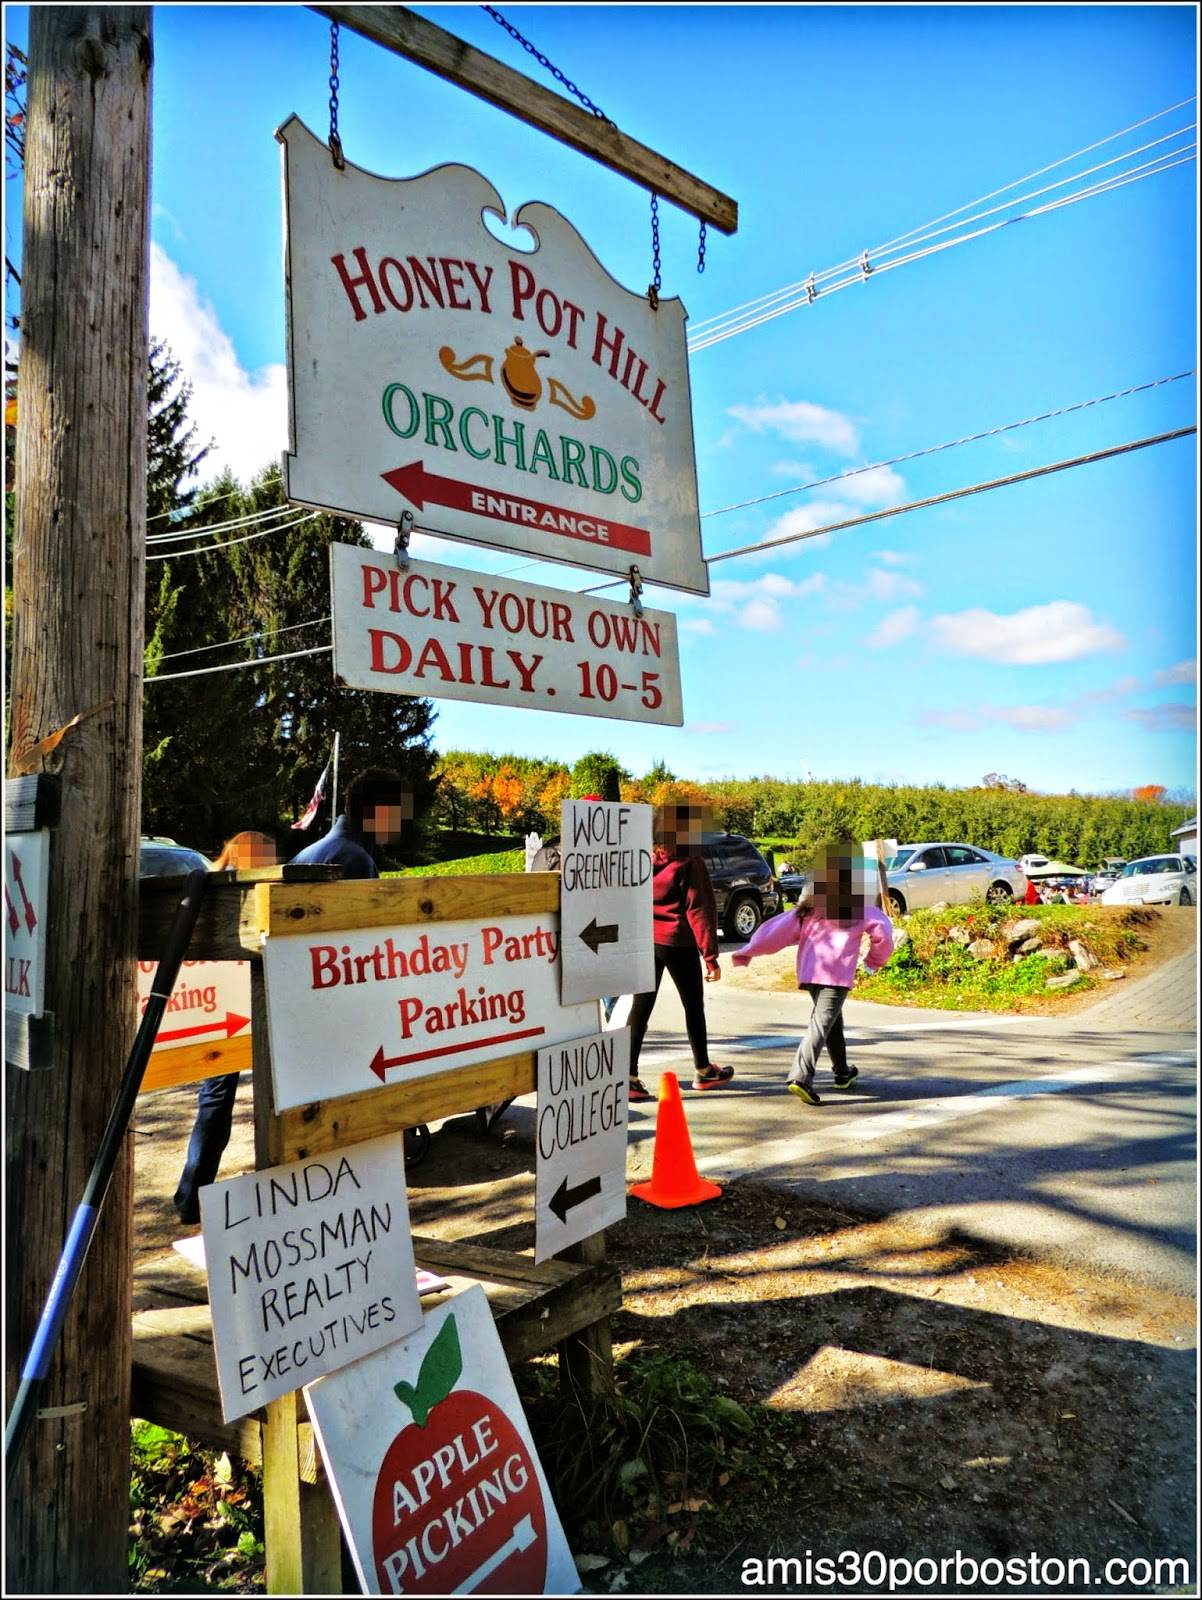 Cosecha de Manzanas: Honey Pot Hill Orchards